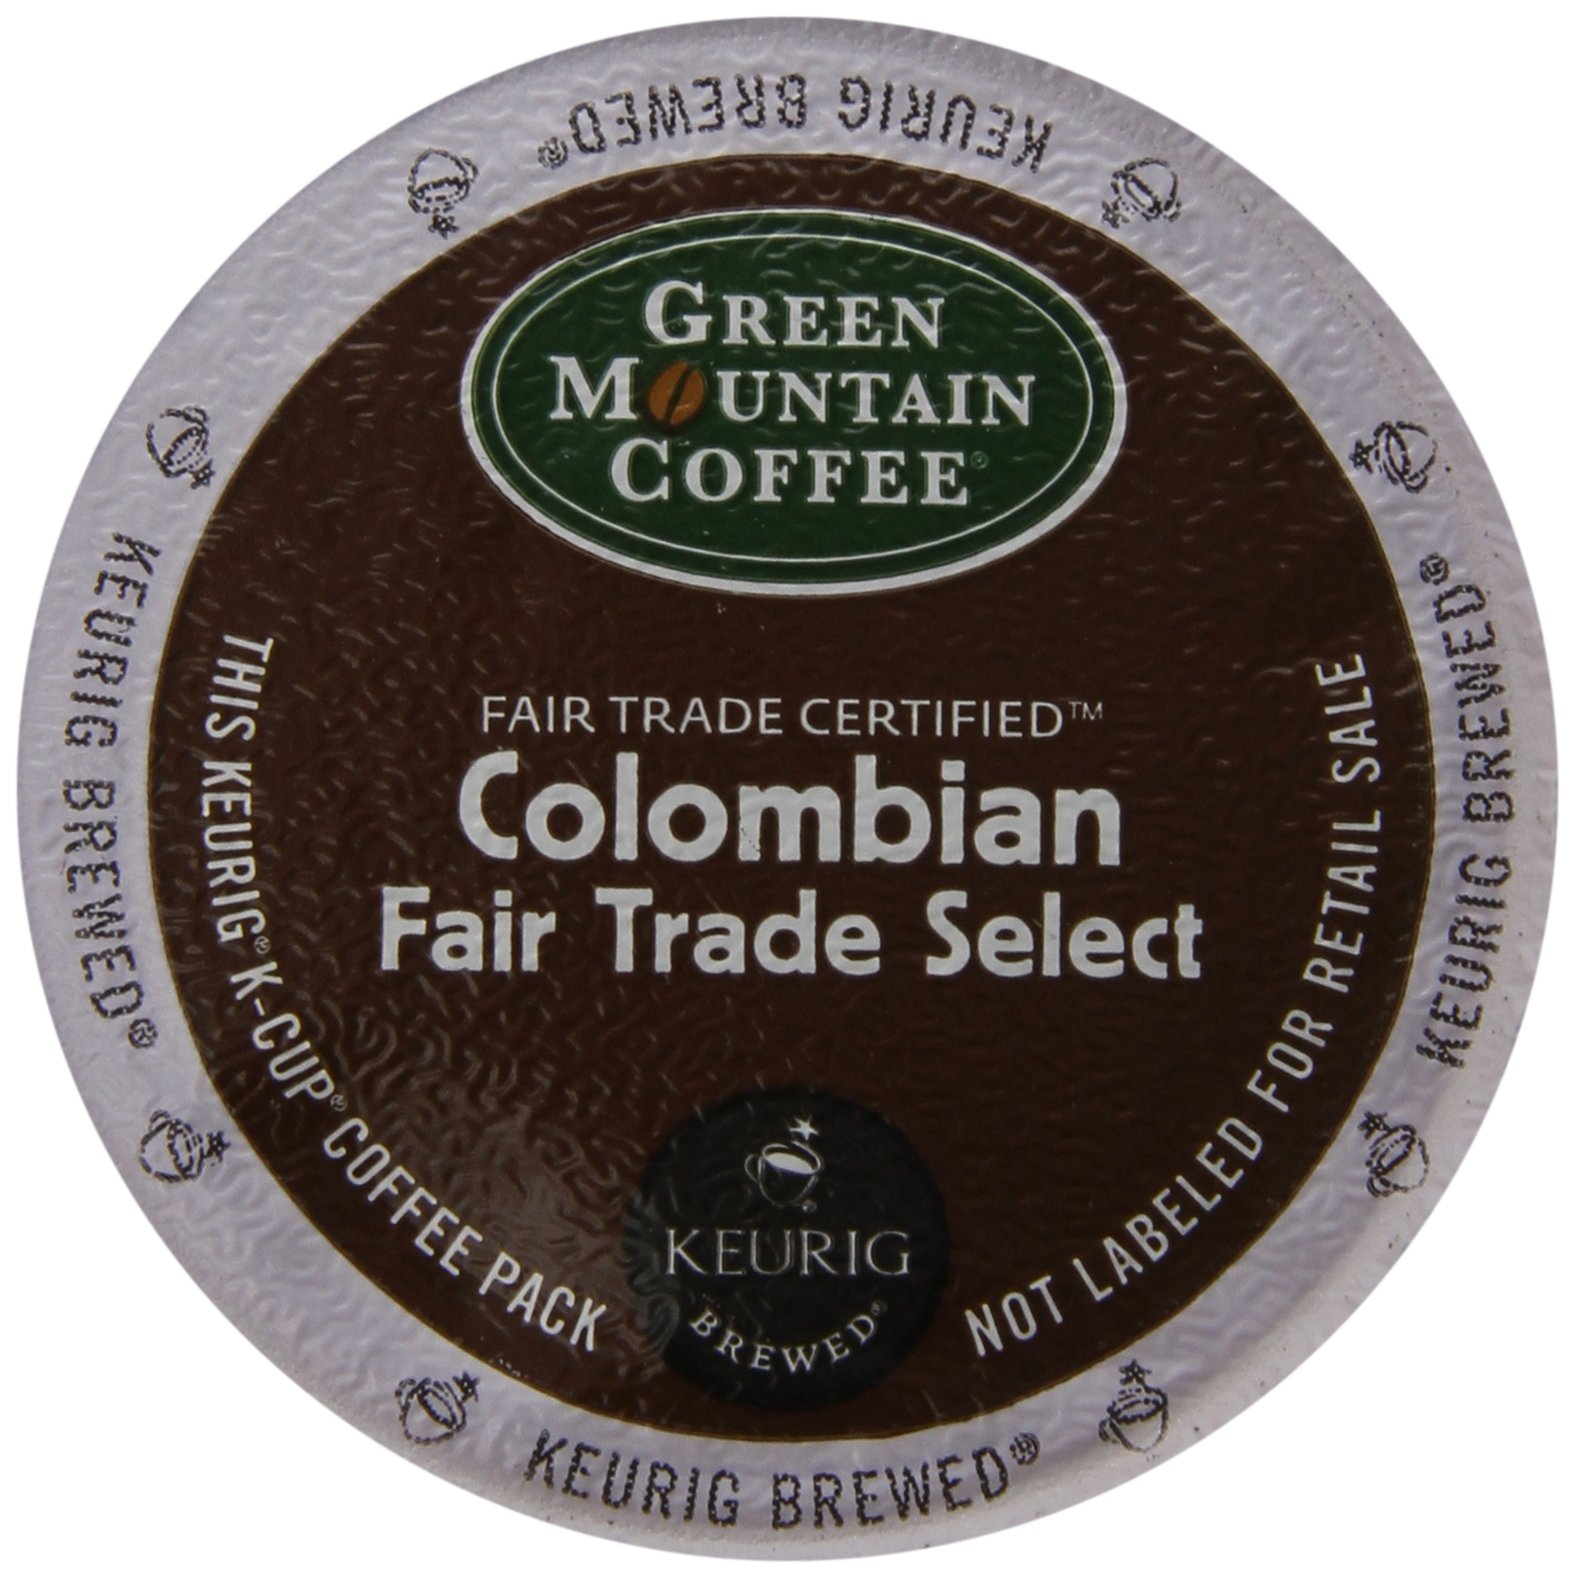 Colombian Fair Trade Select - Two 80 Count Boxes (160 Total) K-Cups Coffee For Keurig Brewers (Medium Roast)